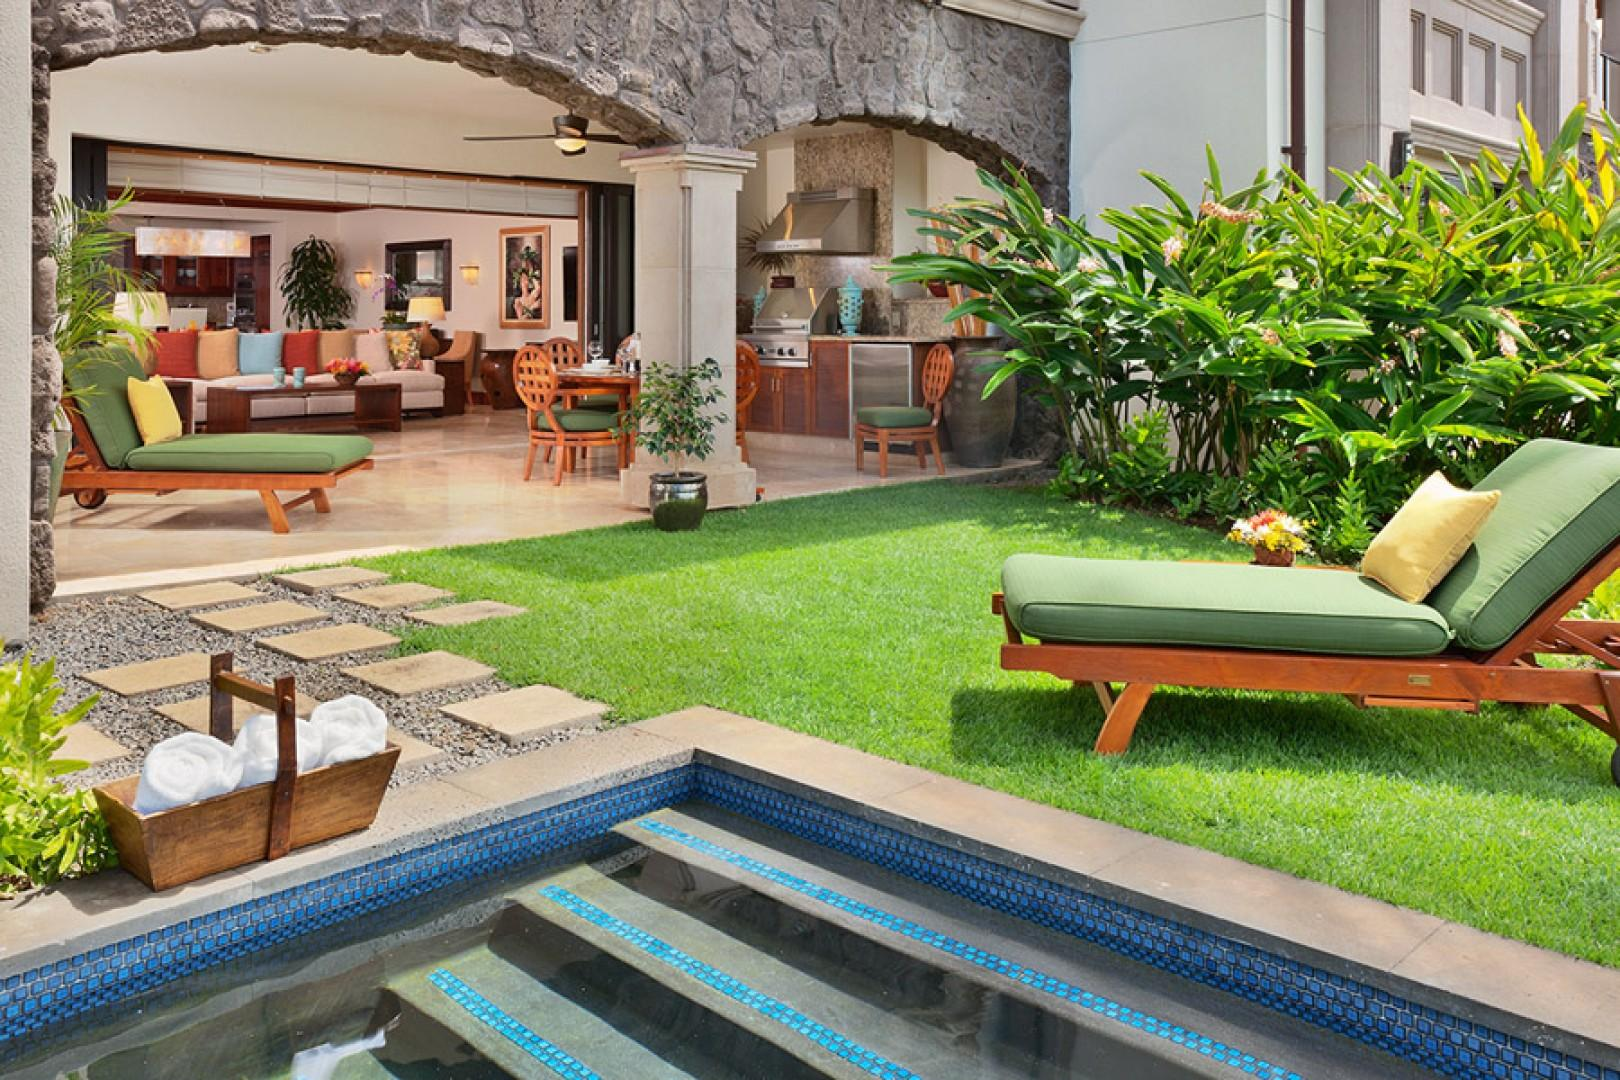 Private Grass Lawn and Garden Just for D101 Coco Palms Villa with Full Direct Ocean and Sunset View and Plunge Pool